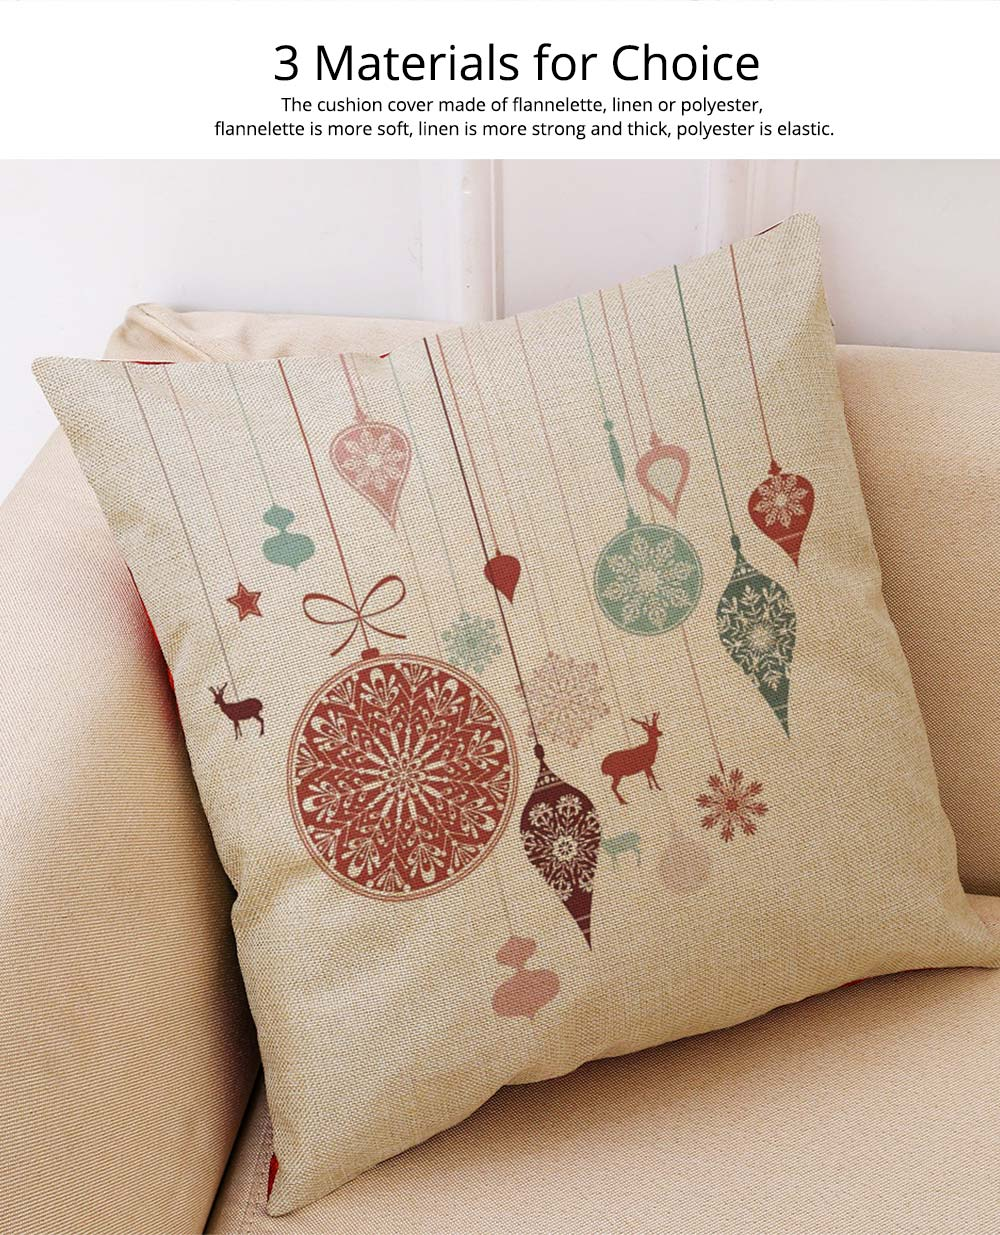 Flannelette Linen Polyester Pillow Case, ew Arrival Christmas Series Home Decoration Cushion Cover 1